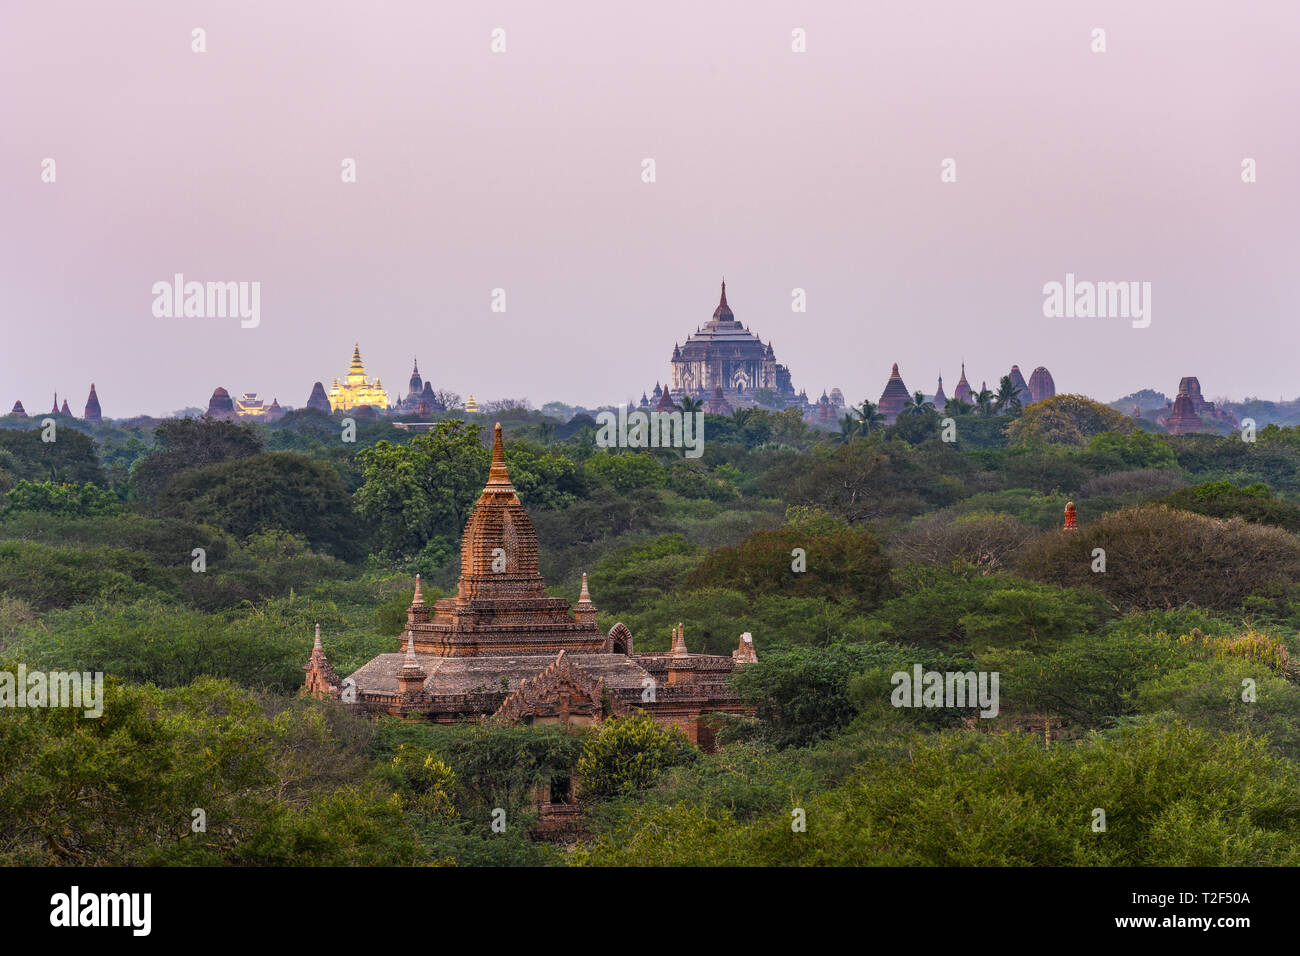 Stunning view of the beautiful Bagan Archaeological Zone with the Thatbyinnyu Temple and the illuminated Golden Palace in the background during sunset Stock Photo